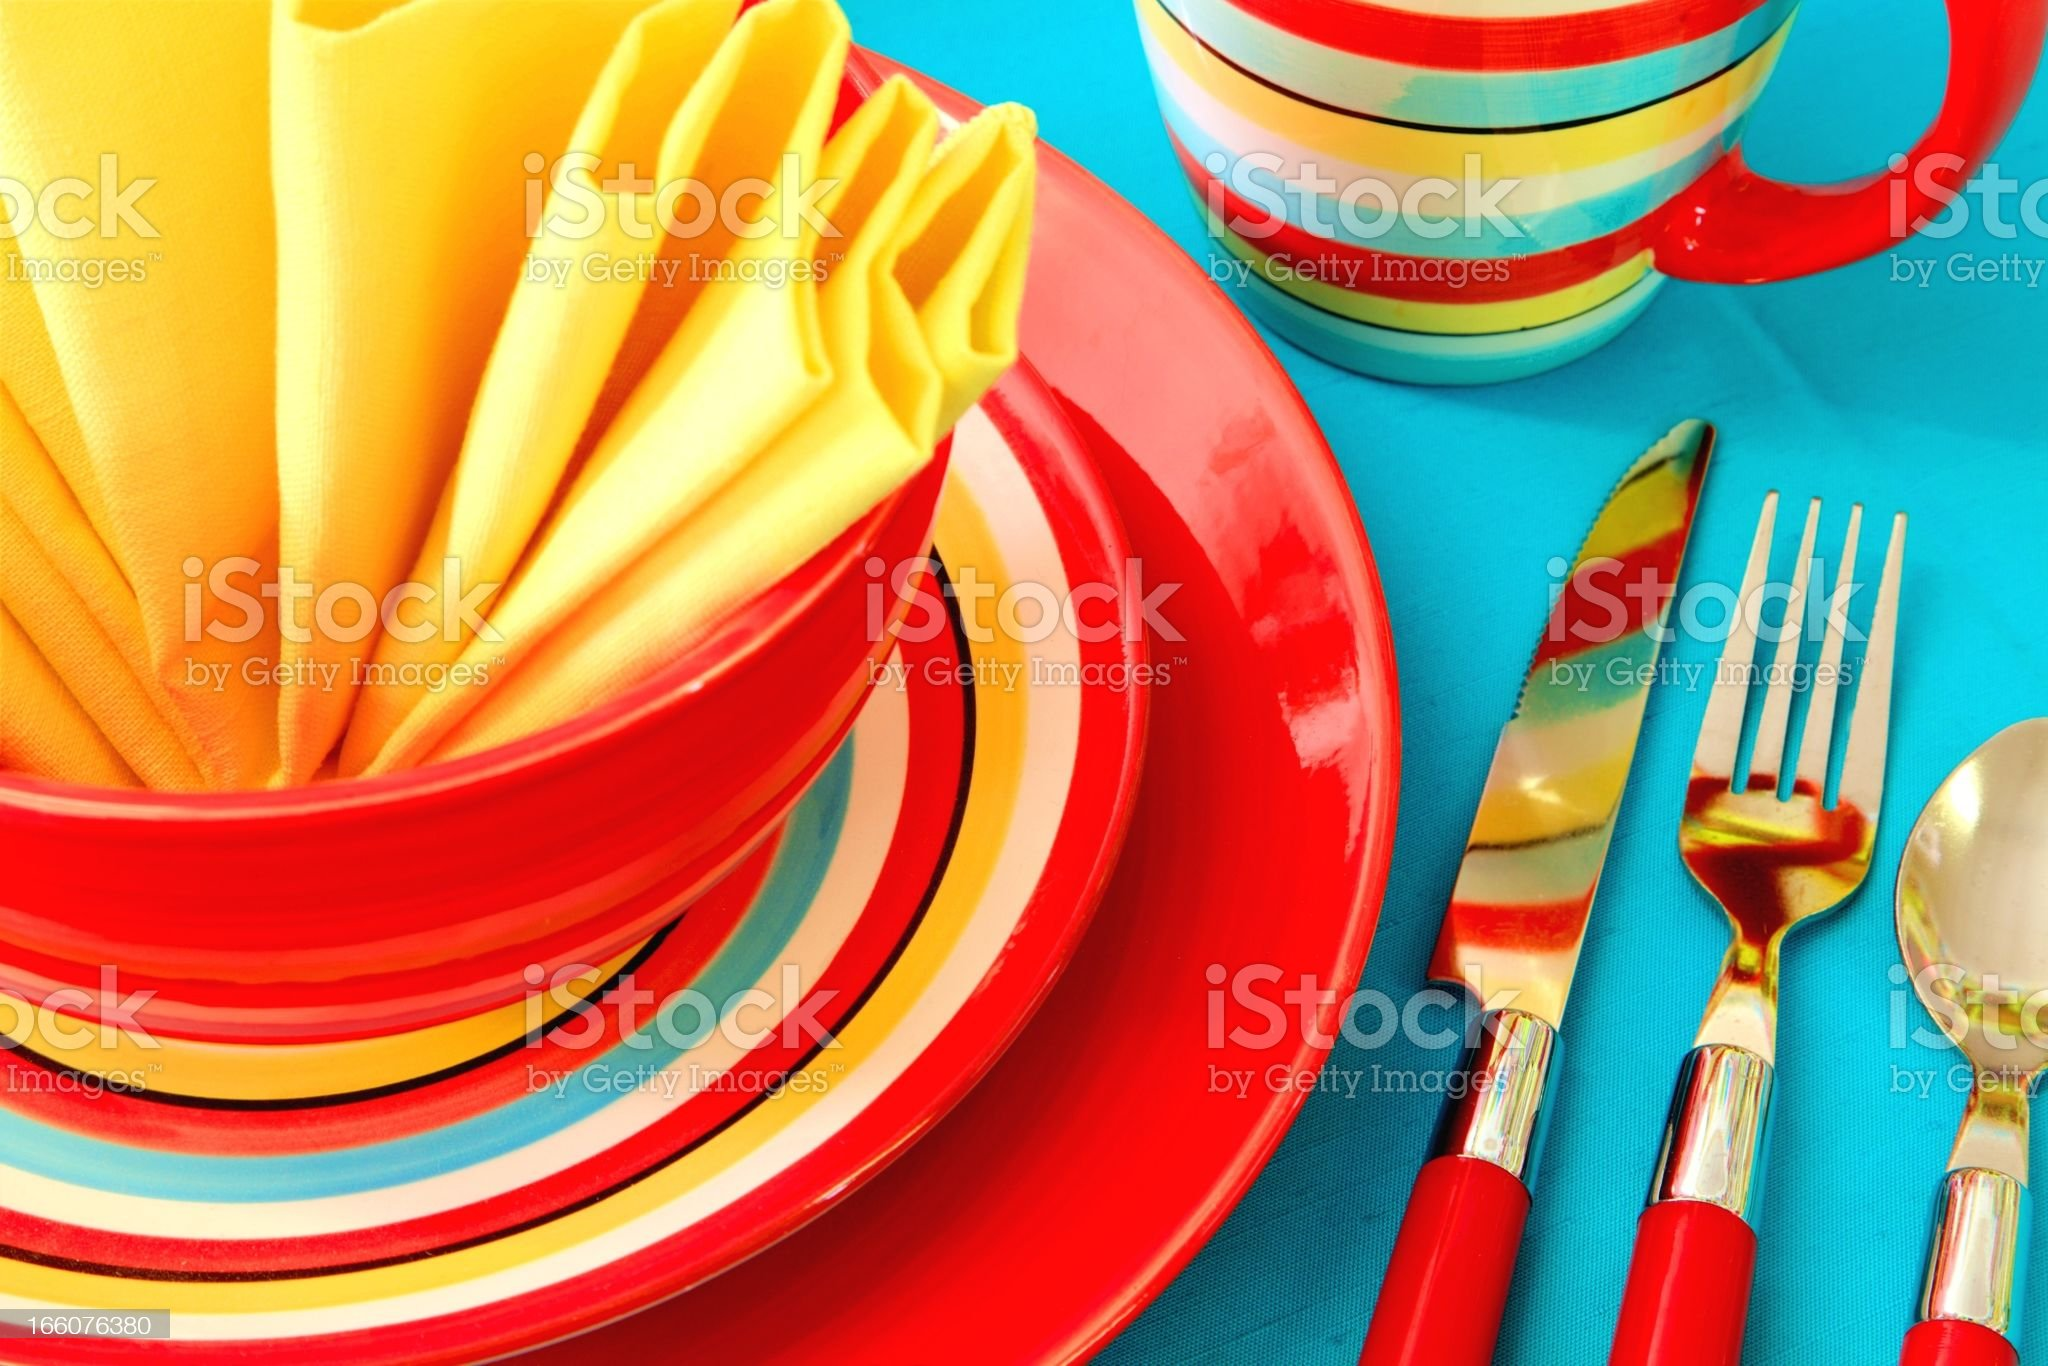 Bright Colorful Place Setting in red, yellow and turquoise royalty-free stock photo